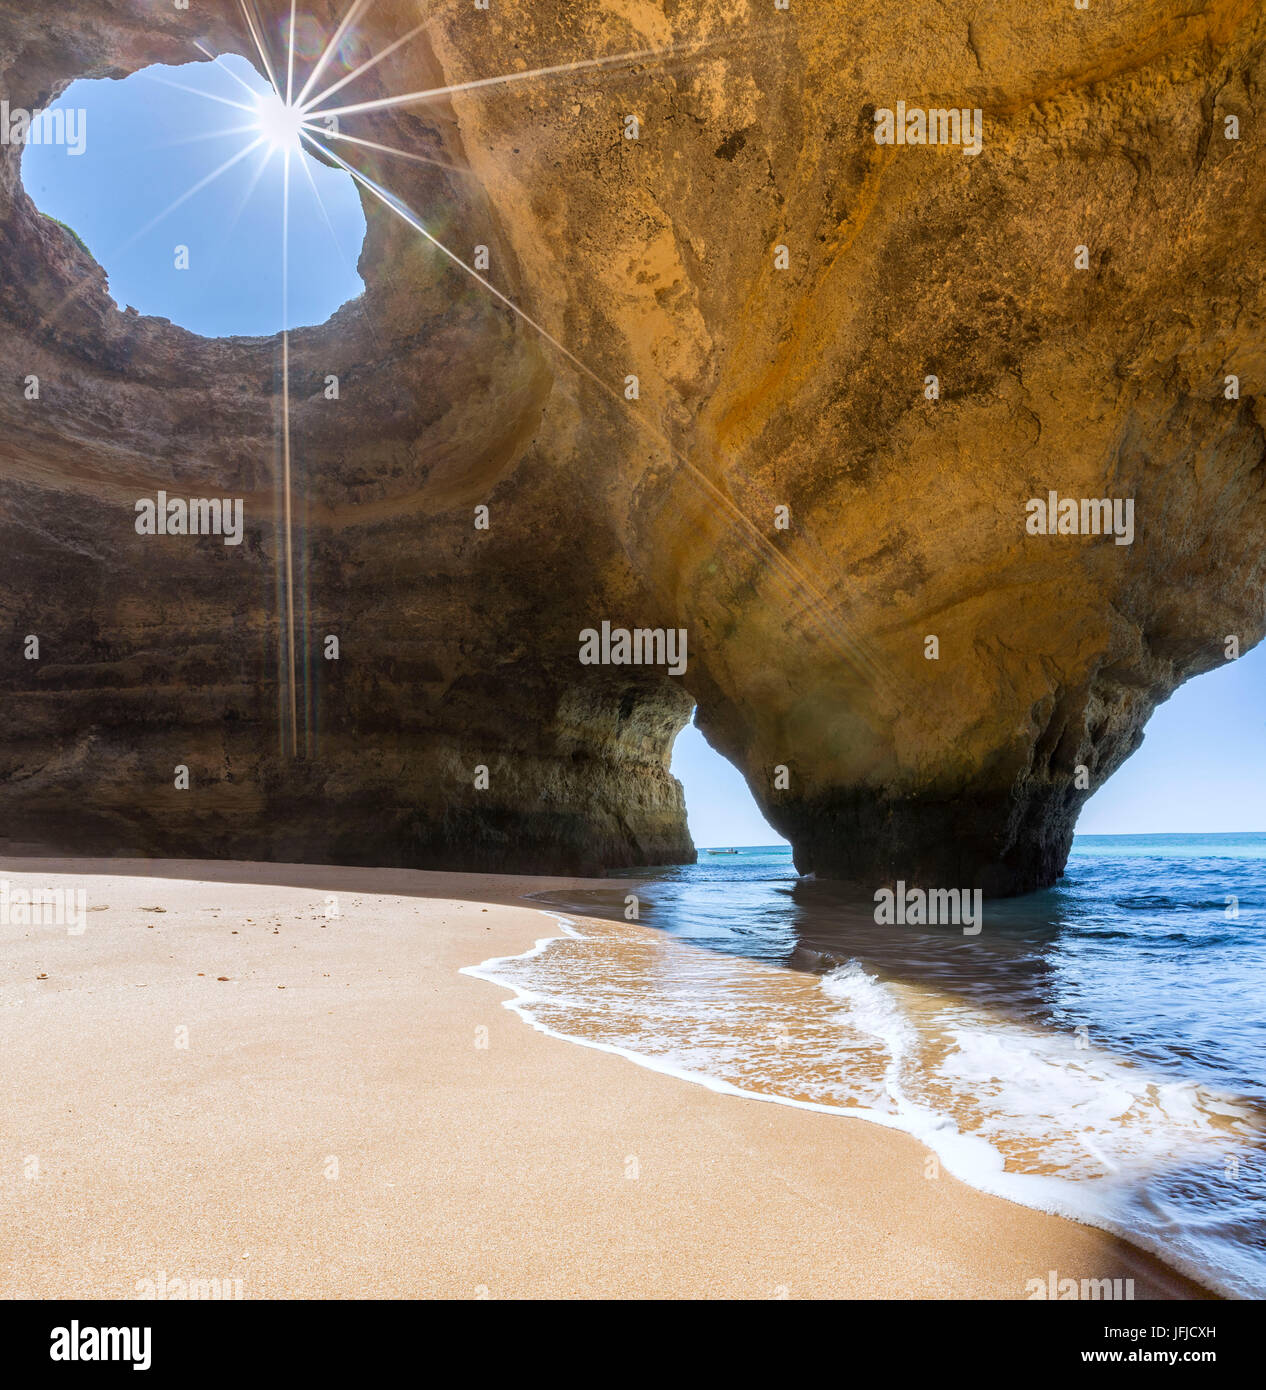 The sun shines through the natural rocky windows inside the caves of Benagil Faro District Algarve Portugal Europe - Stock Image